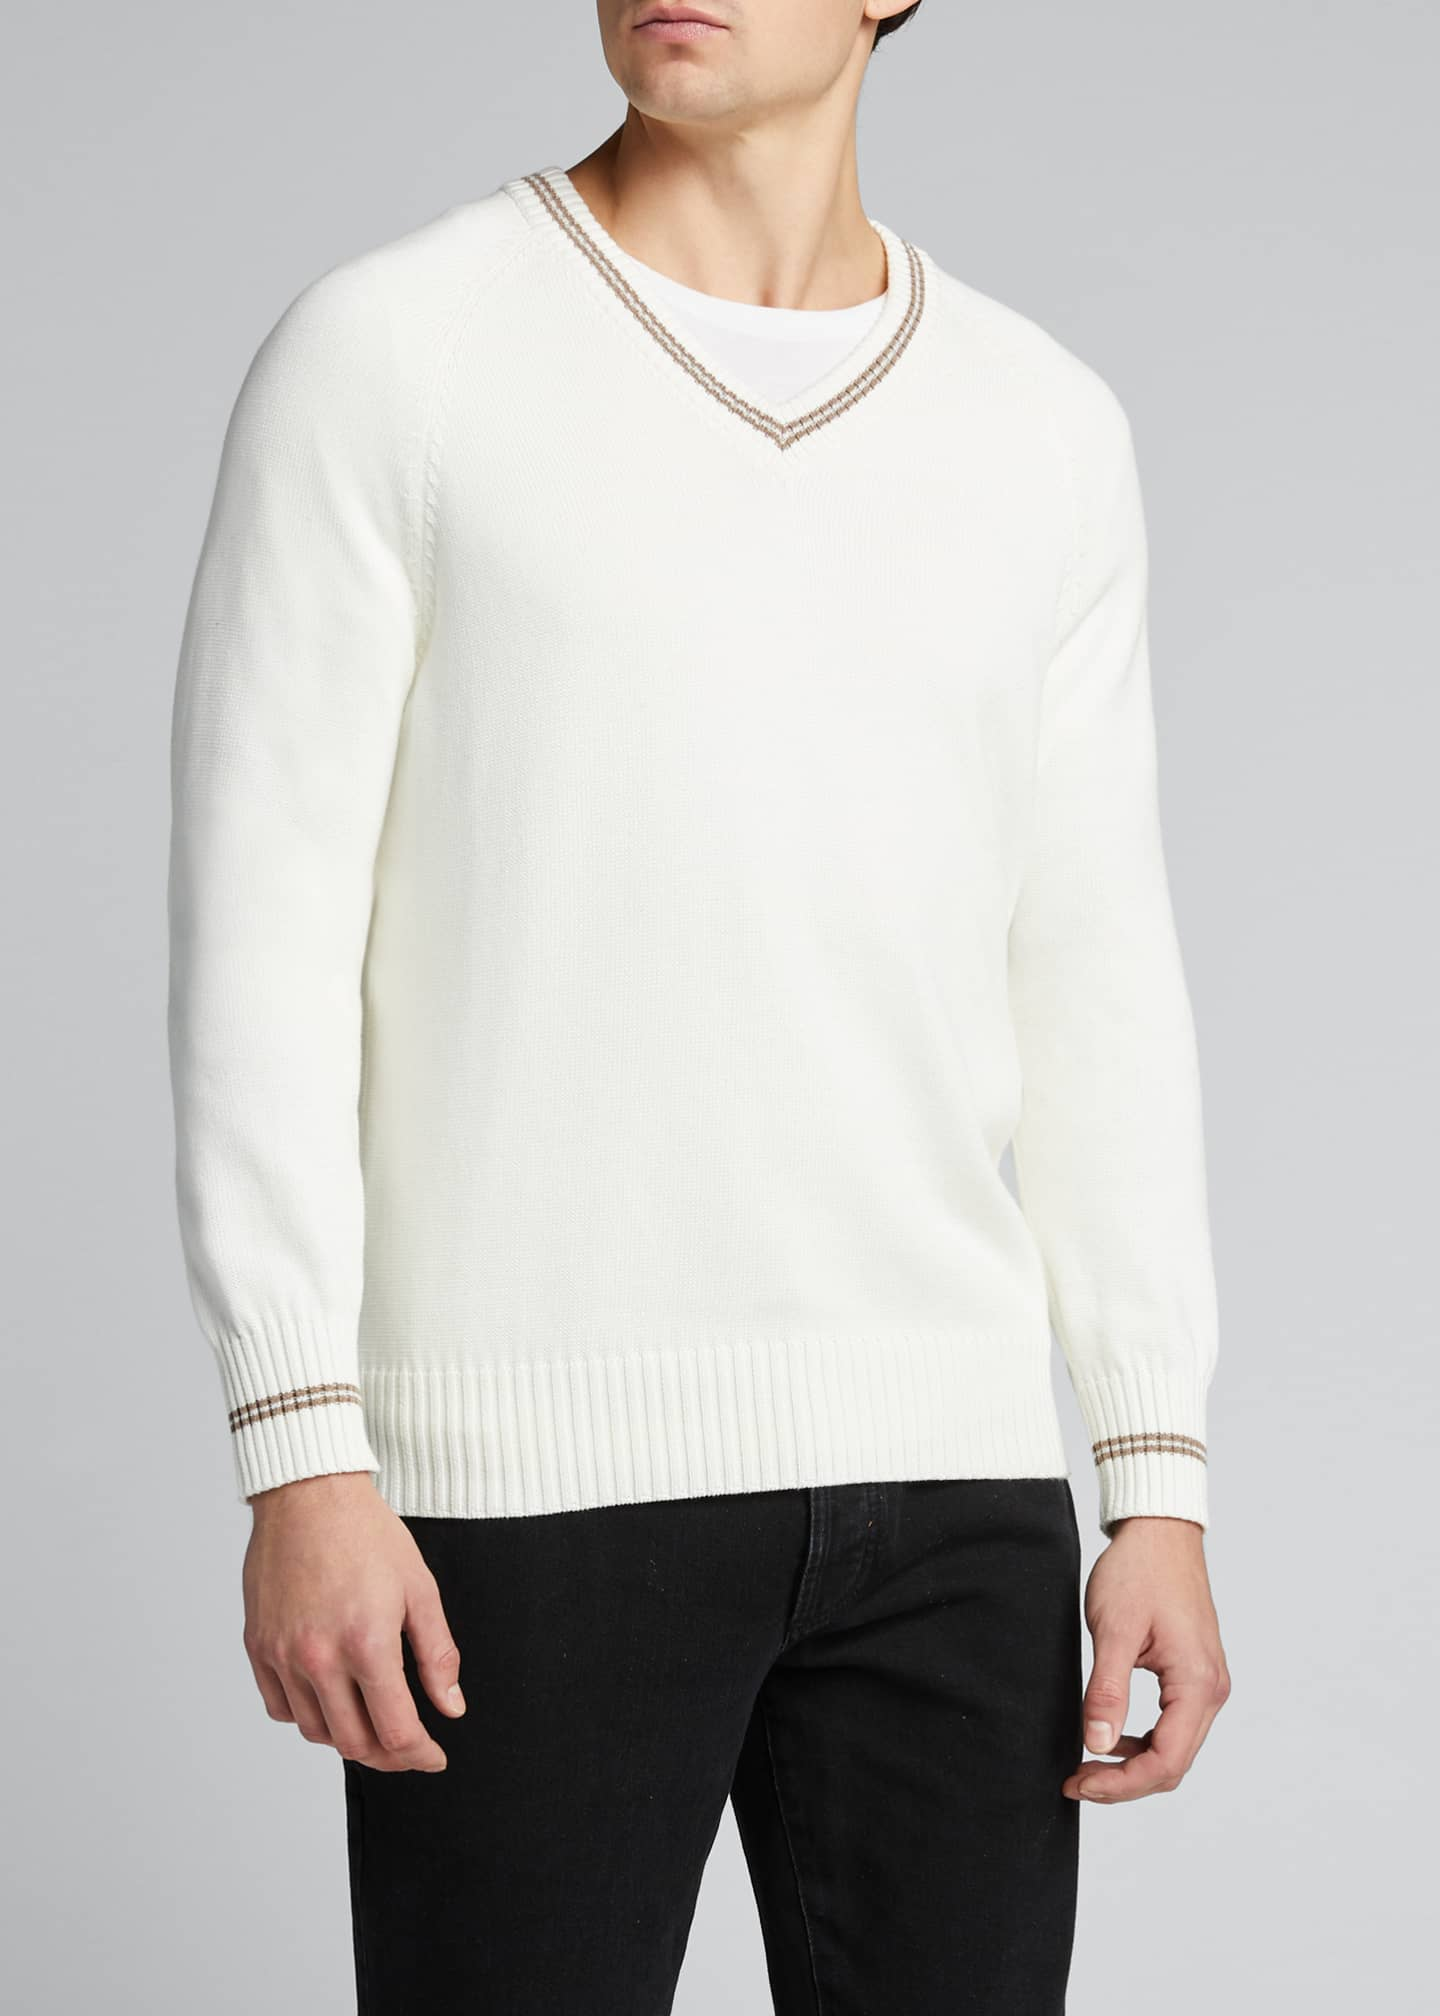 Image 3 of 5: Men's V-Neck Sweater with Contrast Tipping